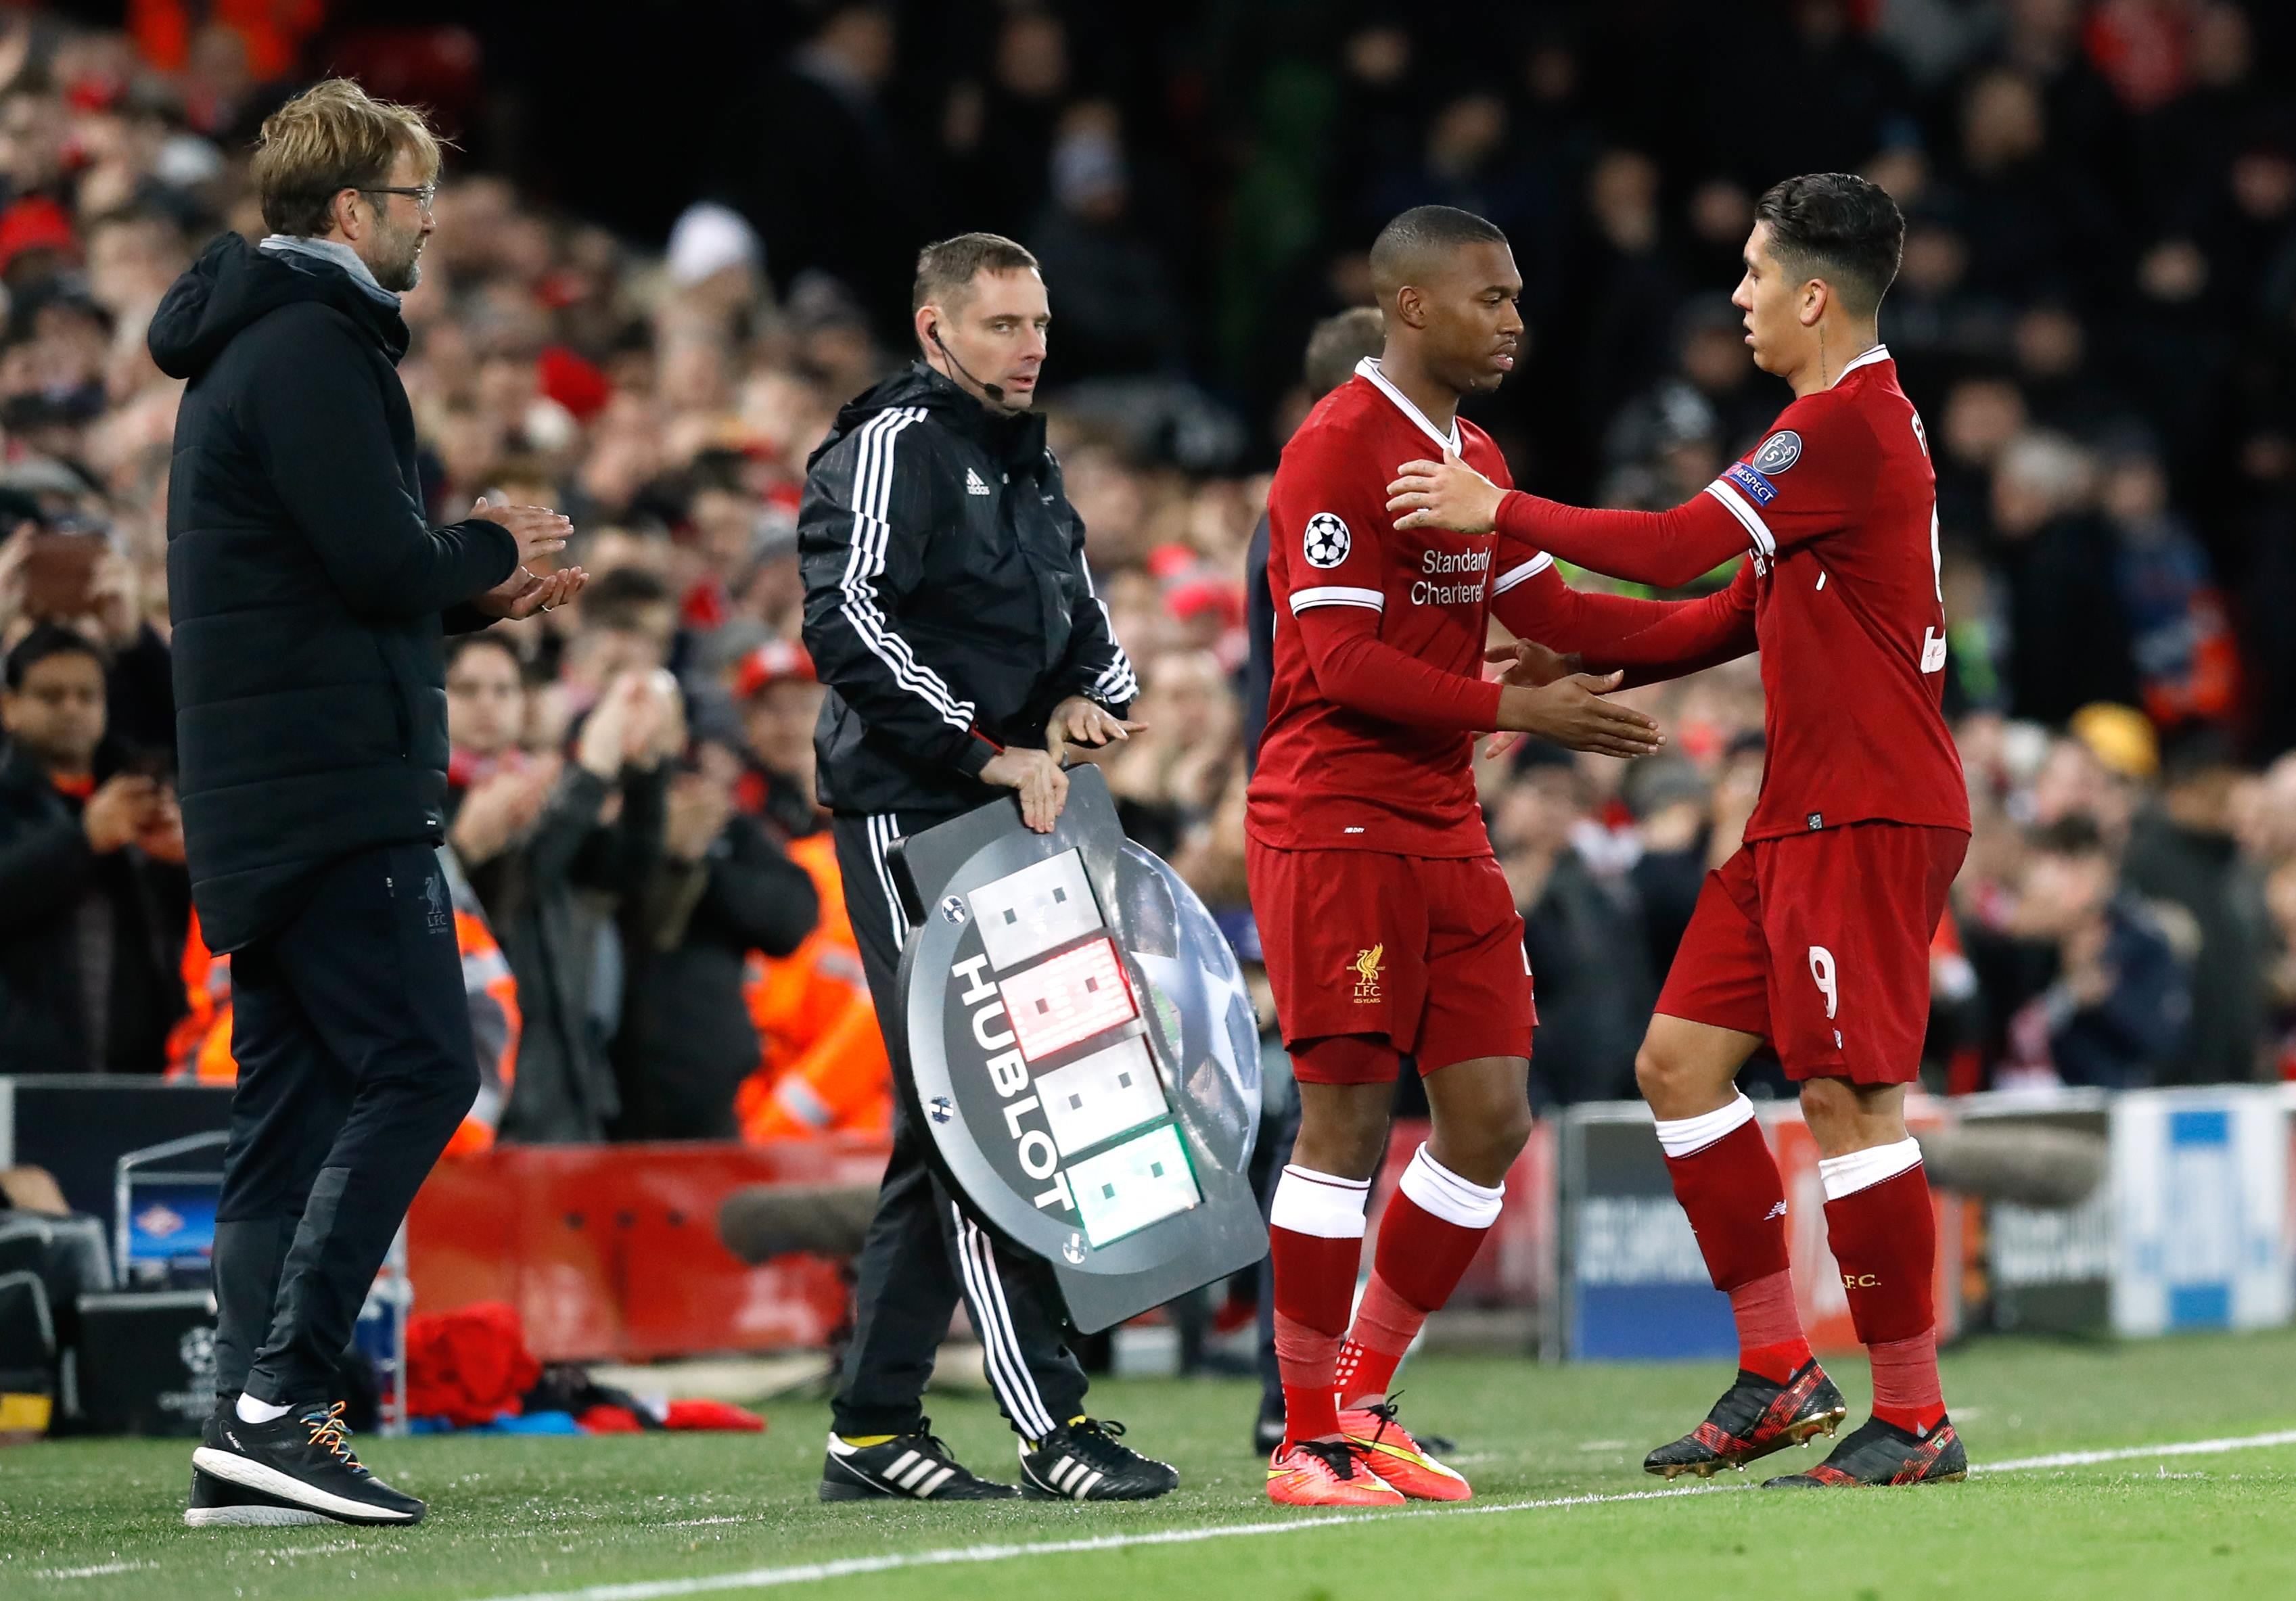 Sturridge has seen a lot of his football from off the bench this season. Image: PA Images.